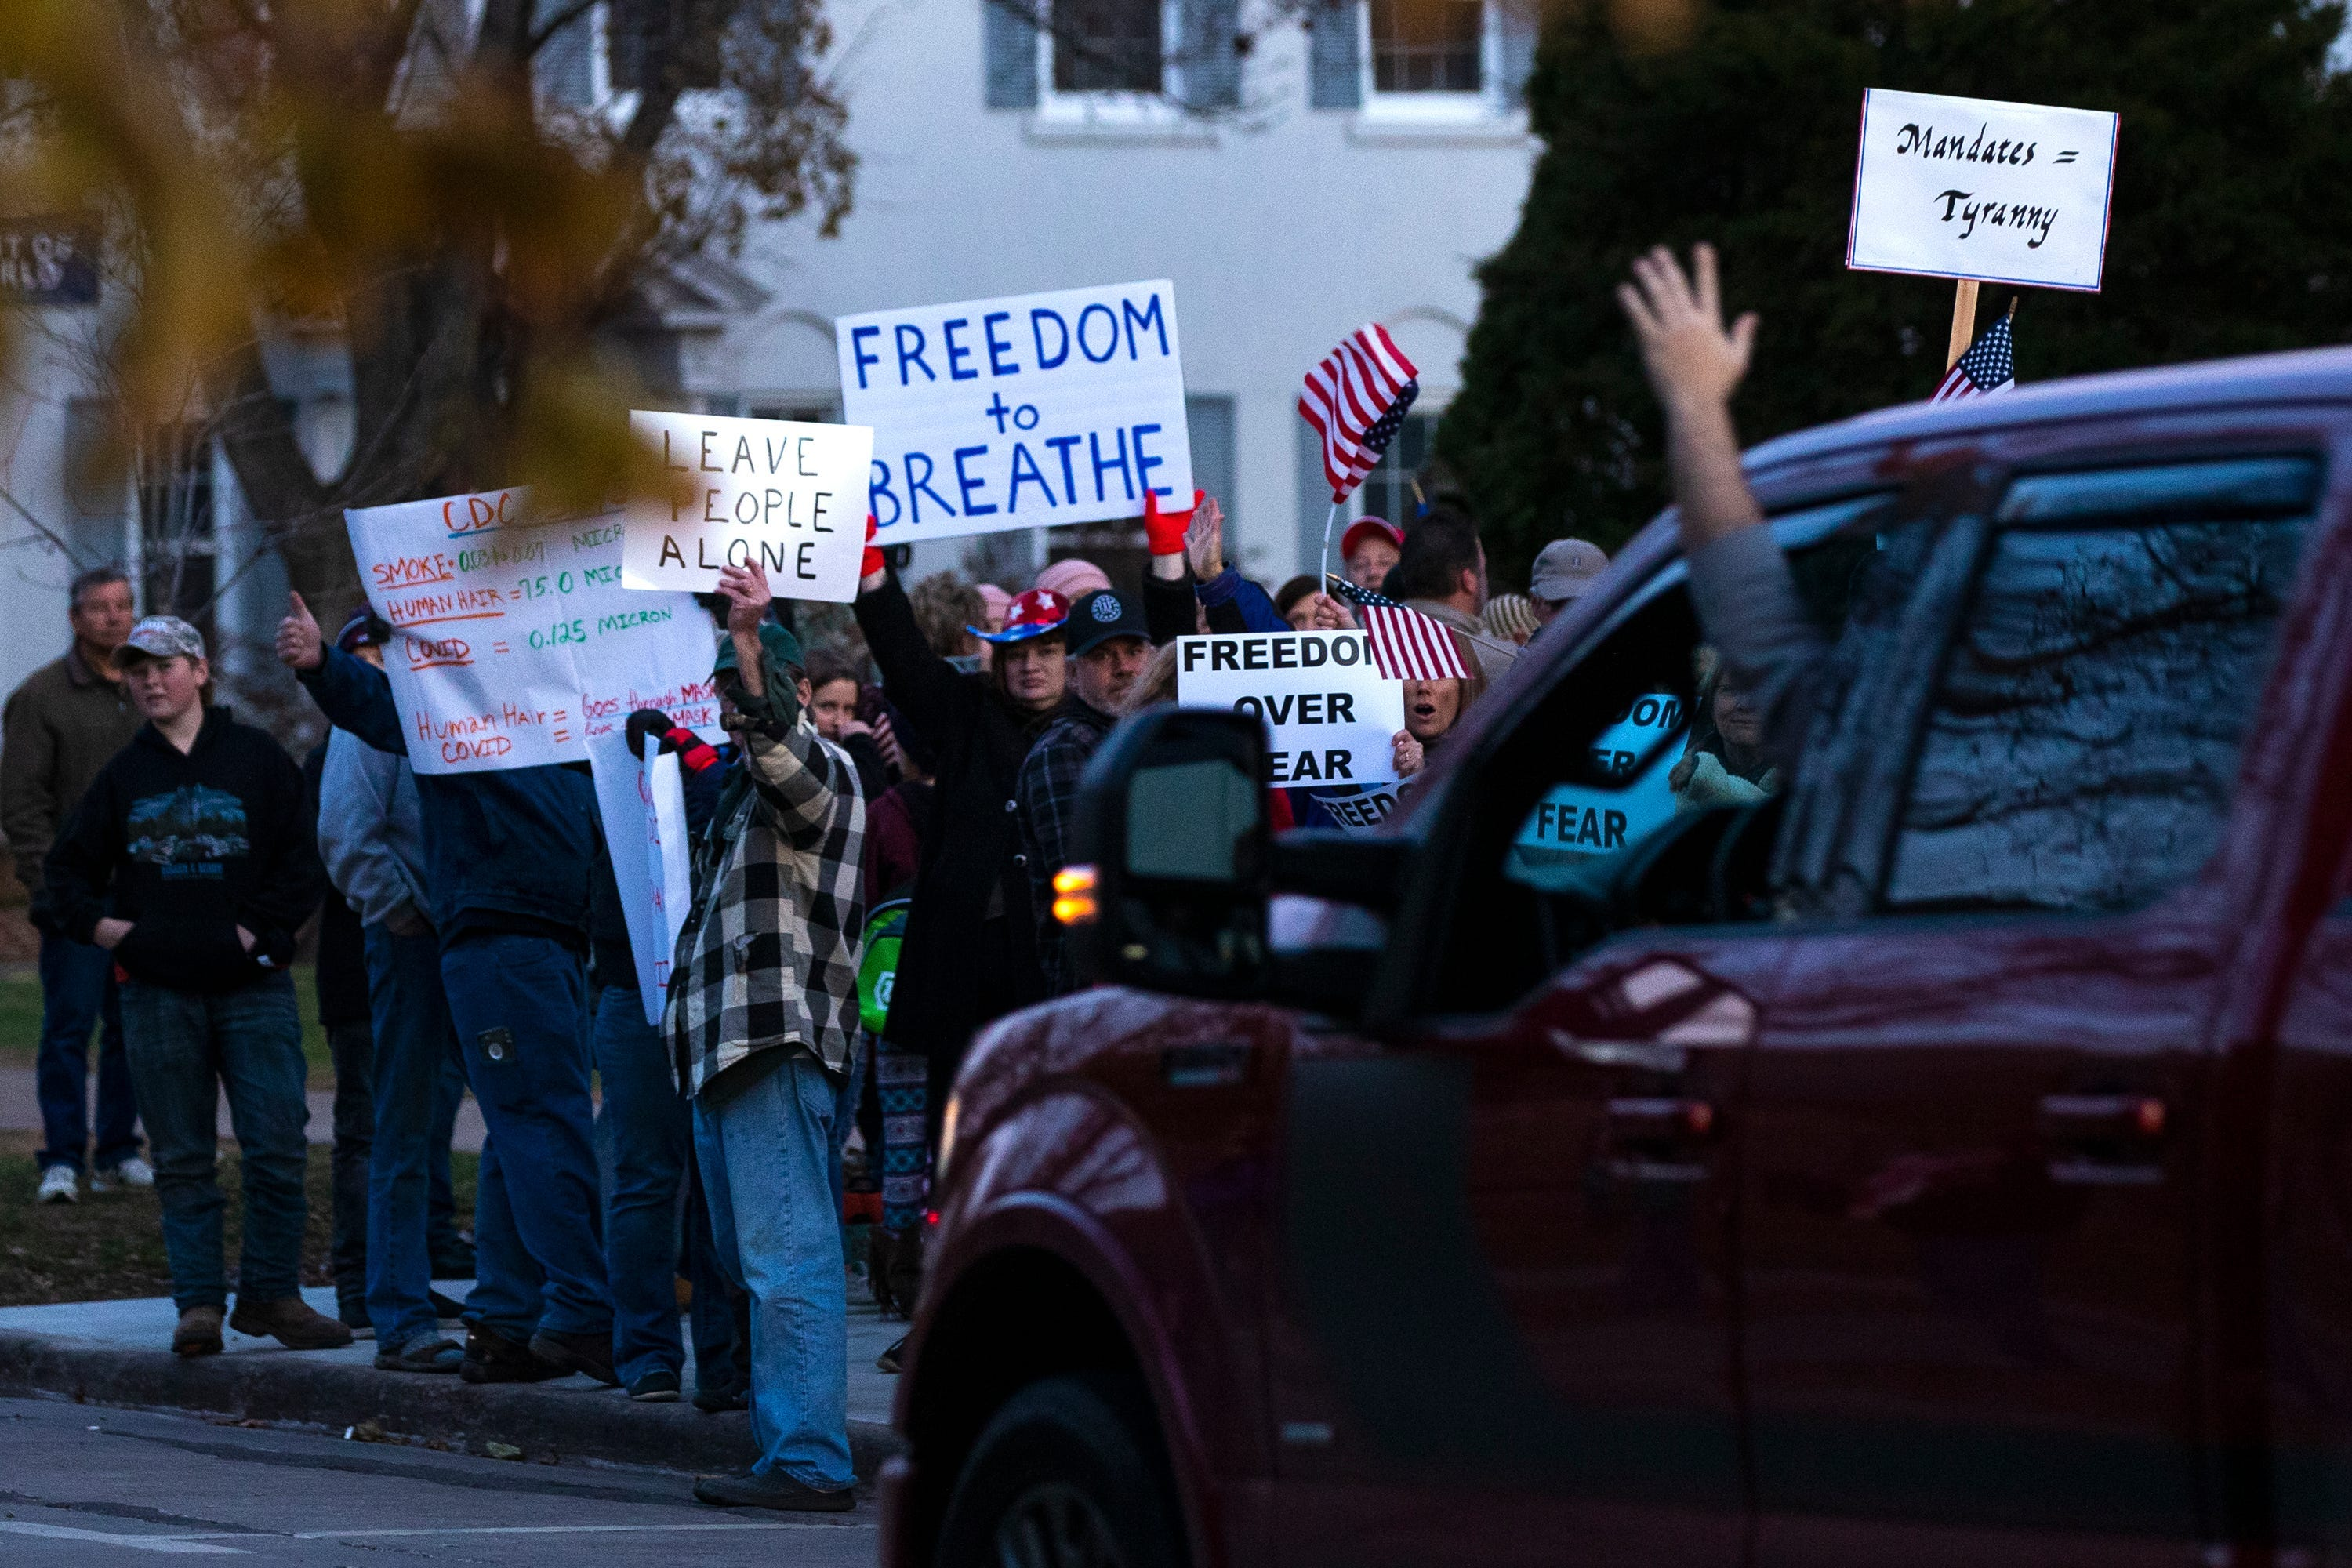 Community members protest proposed mask order Monday, Nov. 2, 2020, at City Hall in Wausau, Wis.